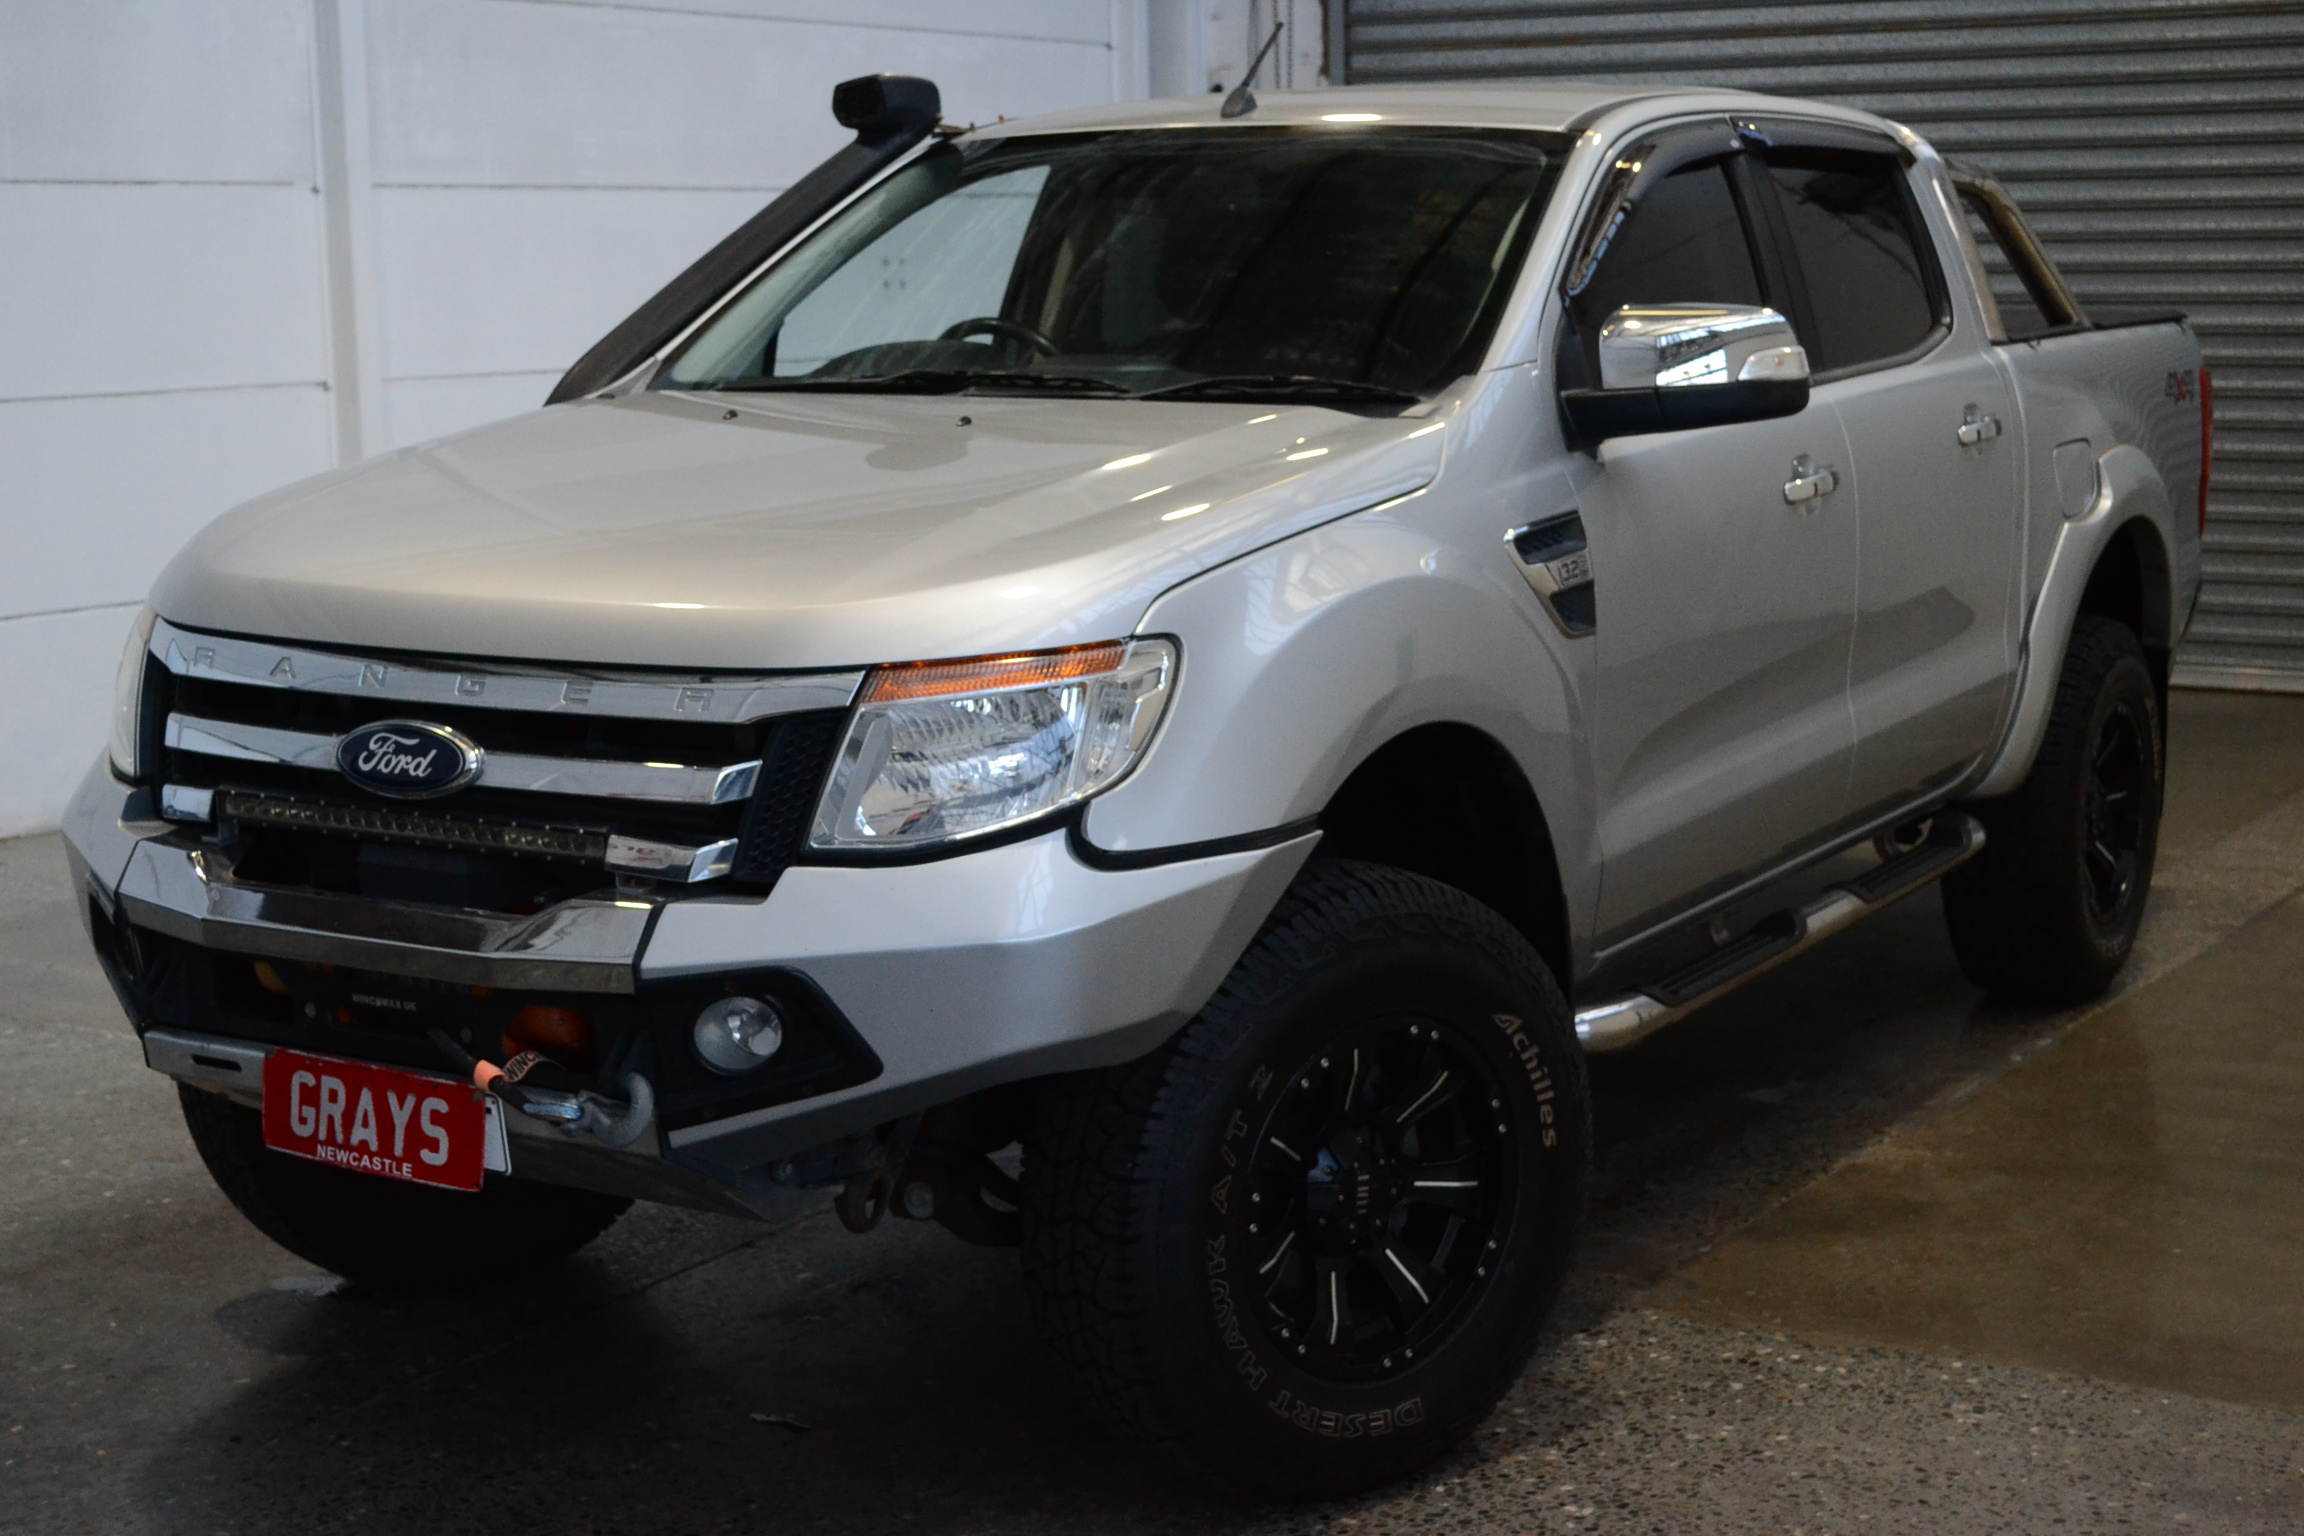 2013 Ford Ranger XLT 4X4 PX Turbo Diesel Automatic Dual Cab